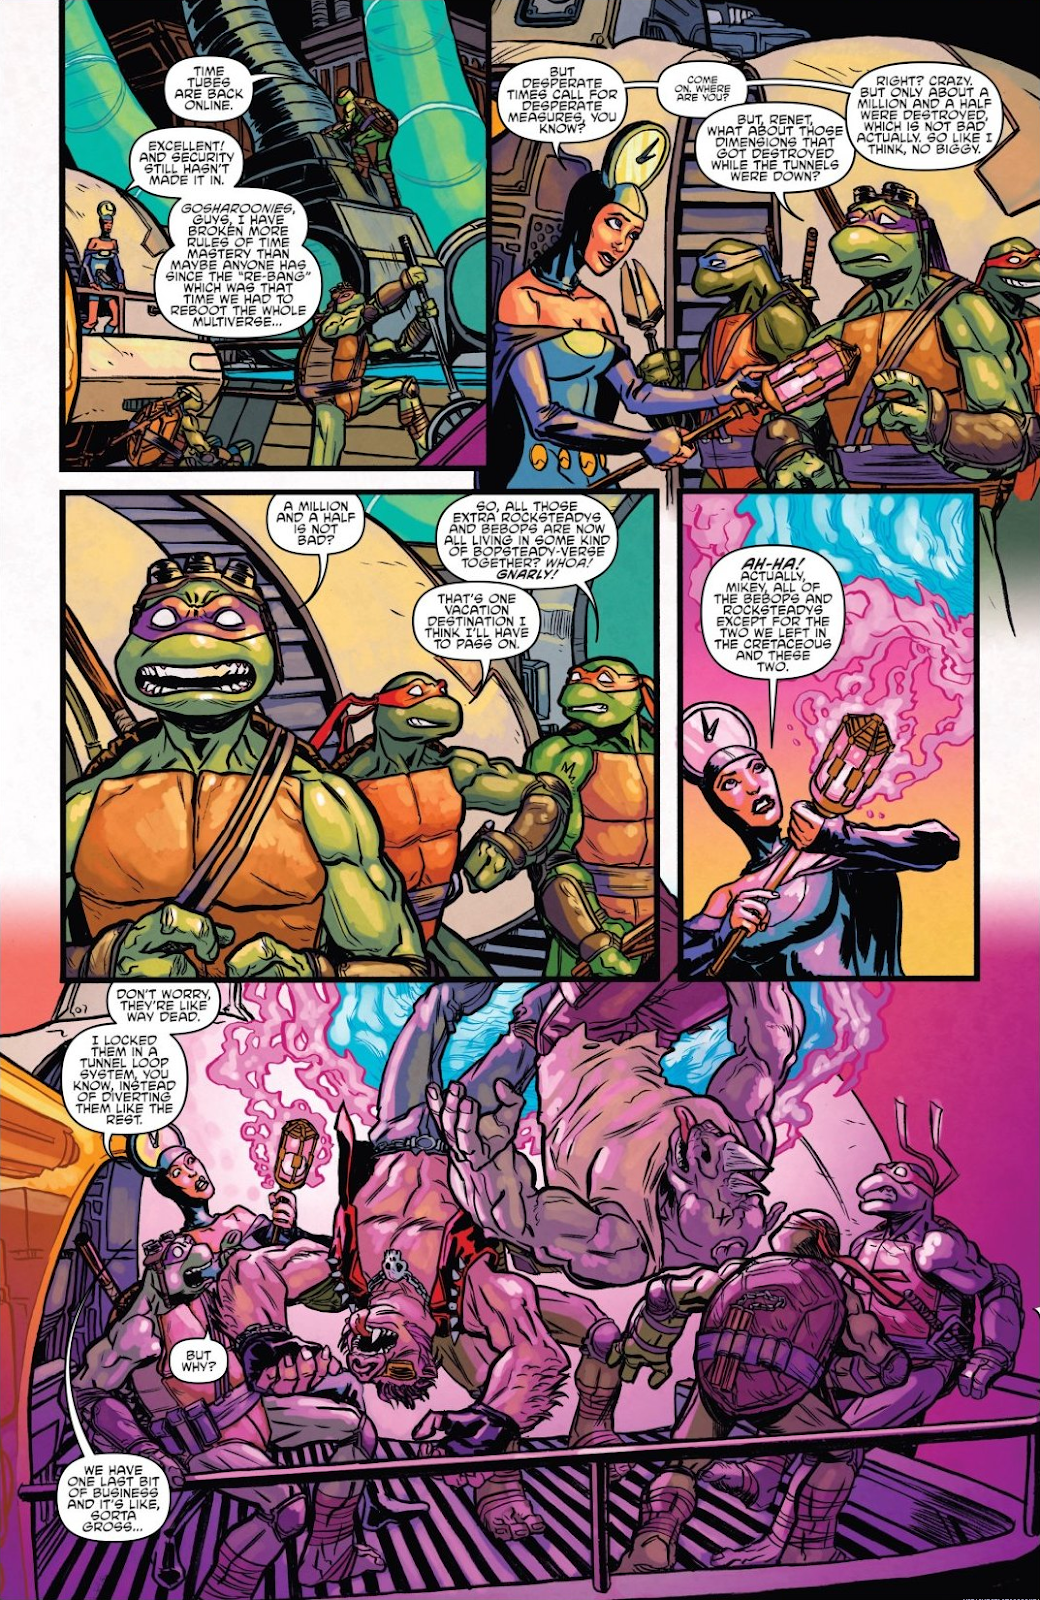 Read online Teenage Mutant Ninja Turtles: The IDW Collection comic -  Issue # TPB 8 (Part 2) - 3